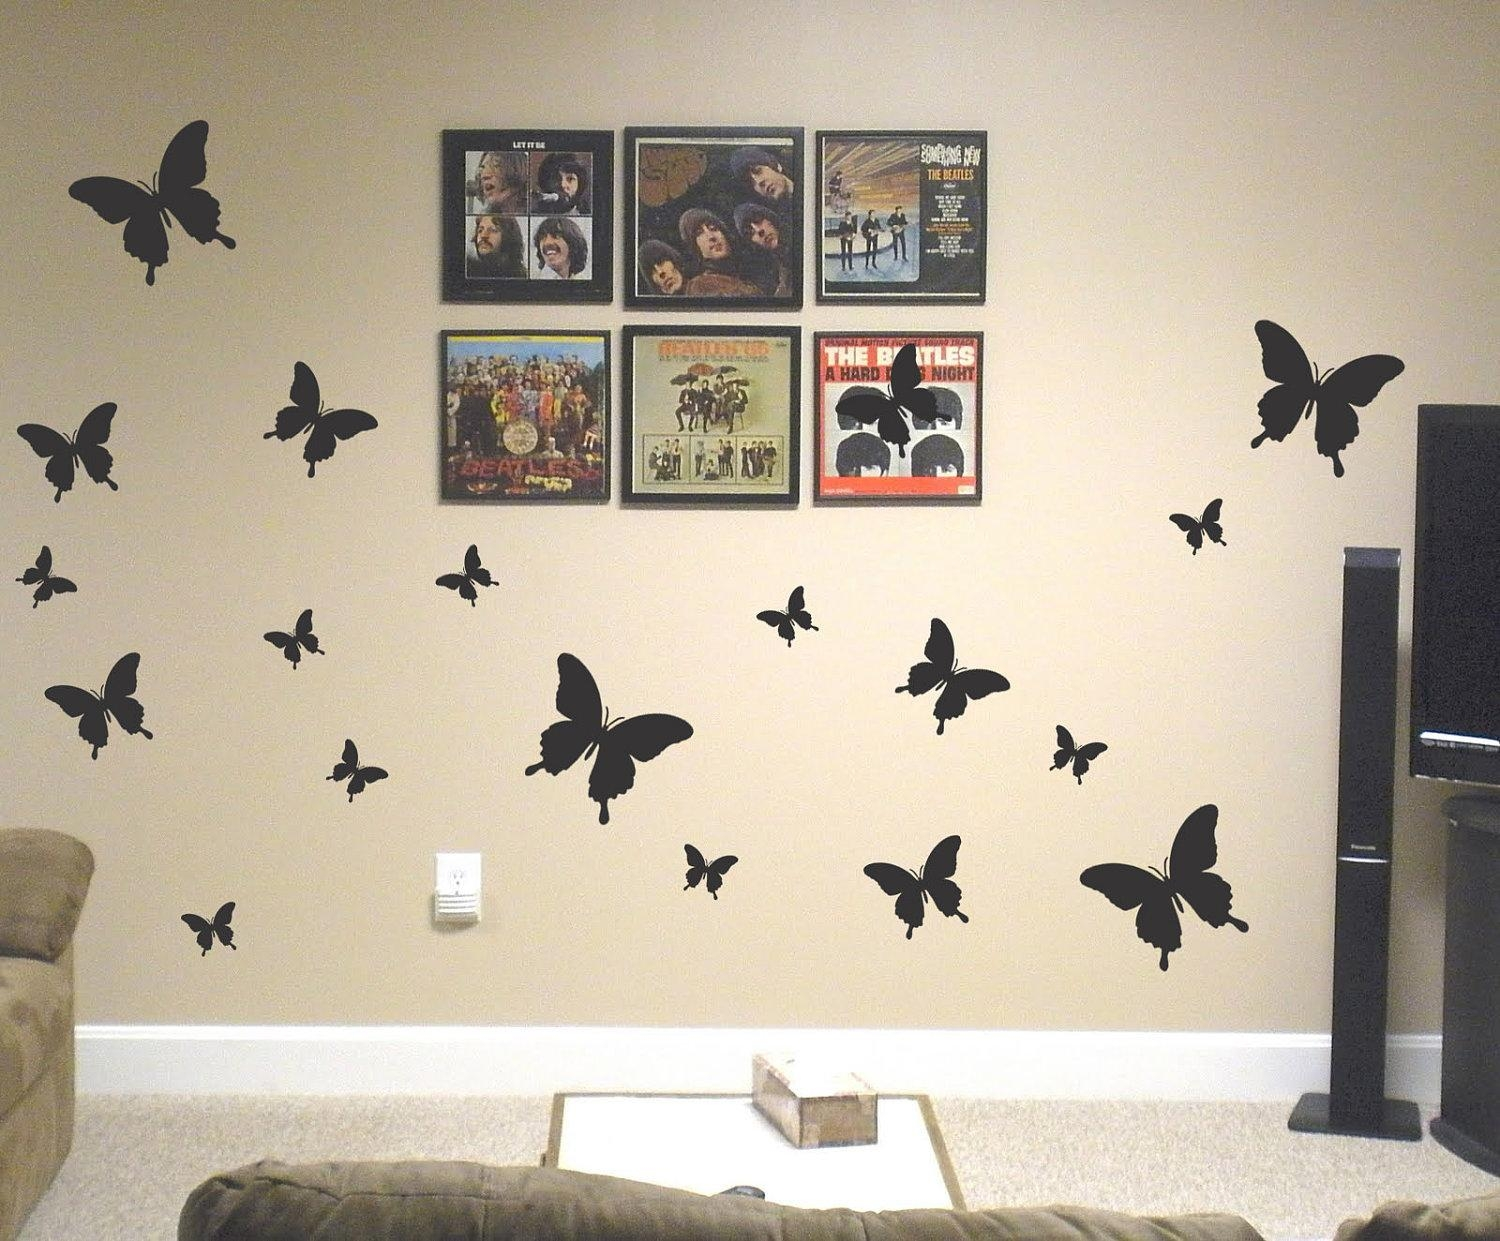 Bedroom Wall Art Paintings Pertaining To Wall Art For Bedrooms (Image 7 of 21)